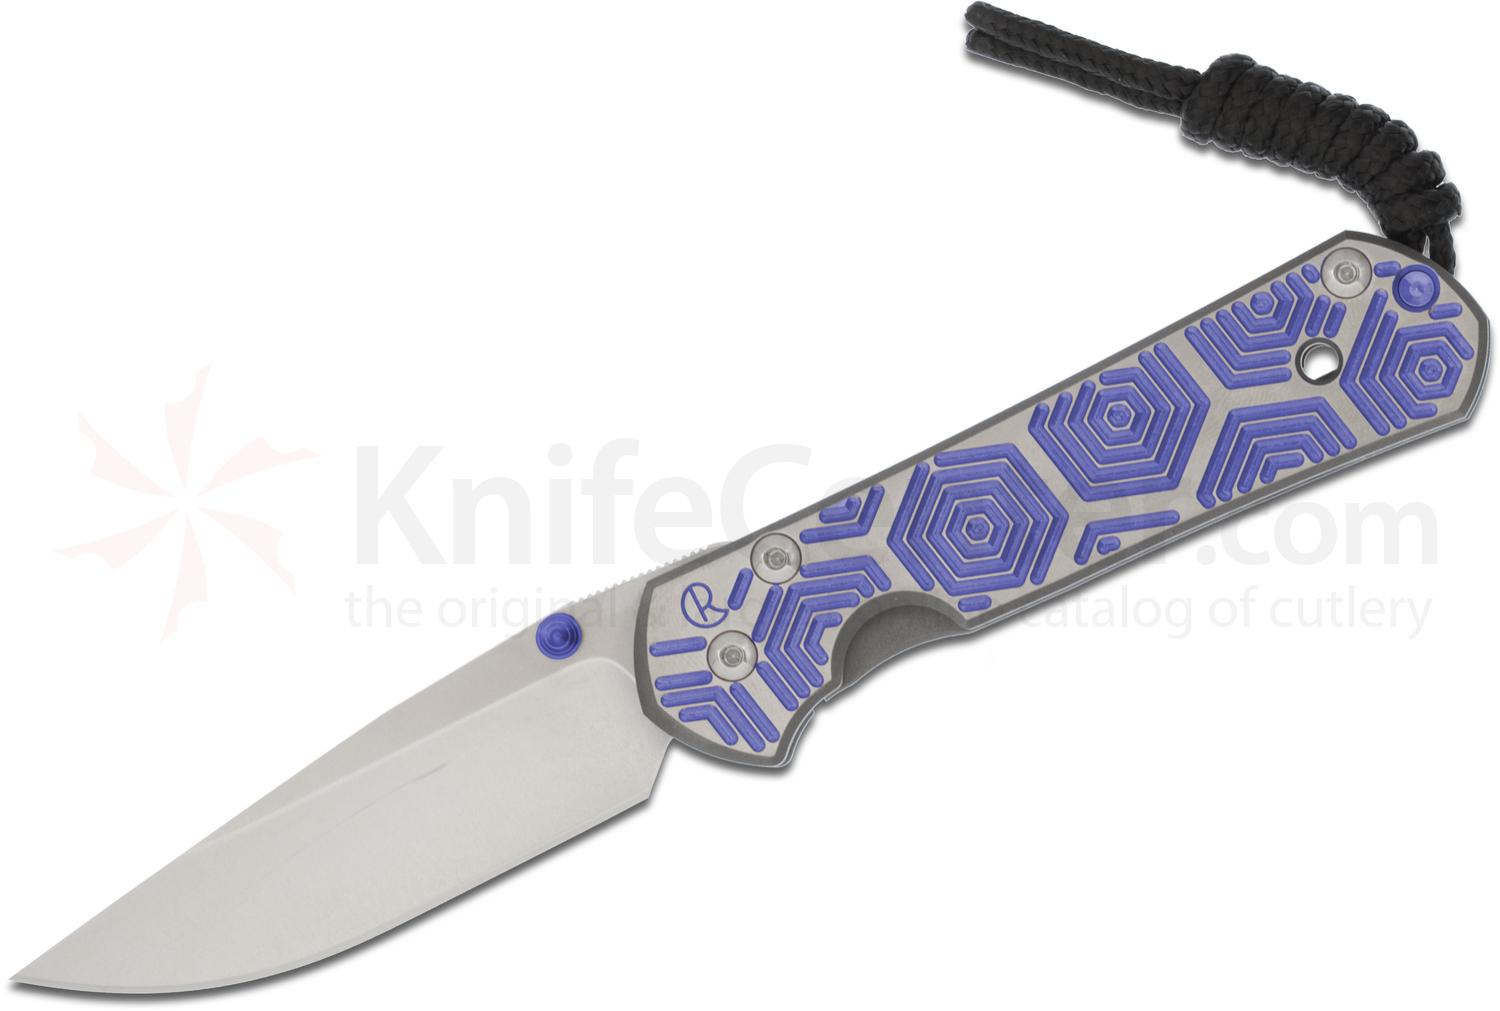 Chris Reeve Small Sebenza 21 Blue Hex CGG Folding Knife 2.94 inch S35VN Stonewashed Blade, Milled Titanium Handles